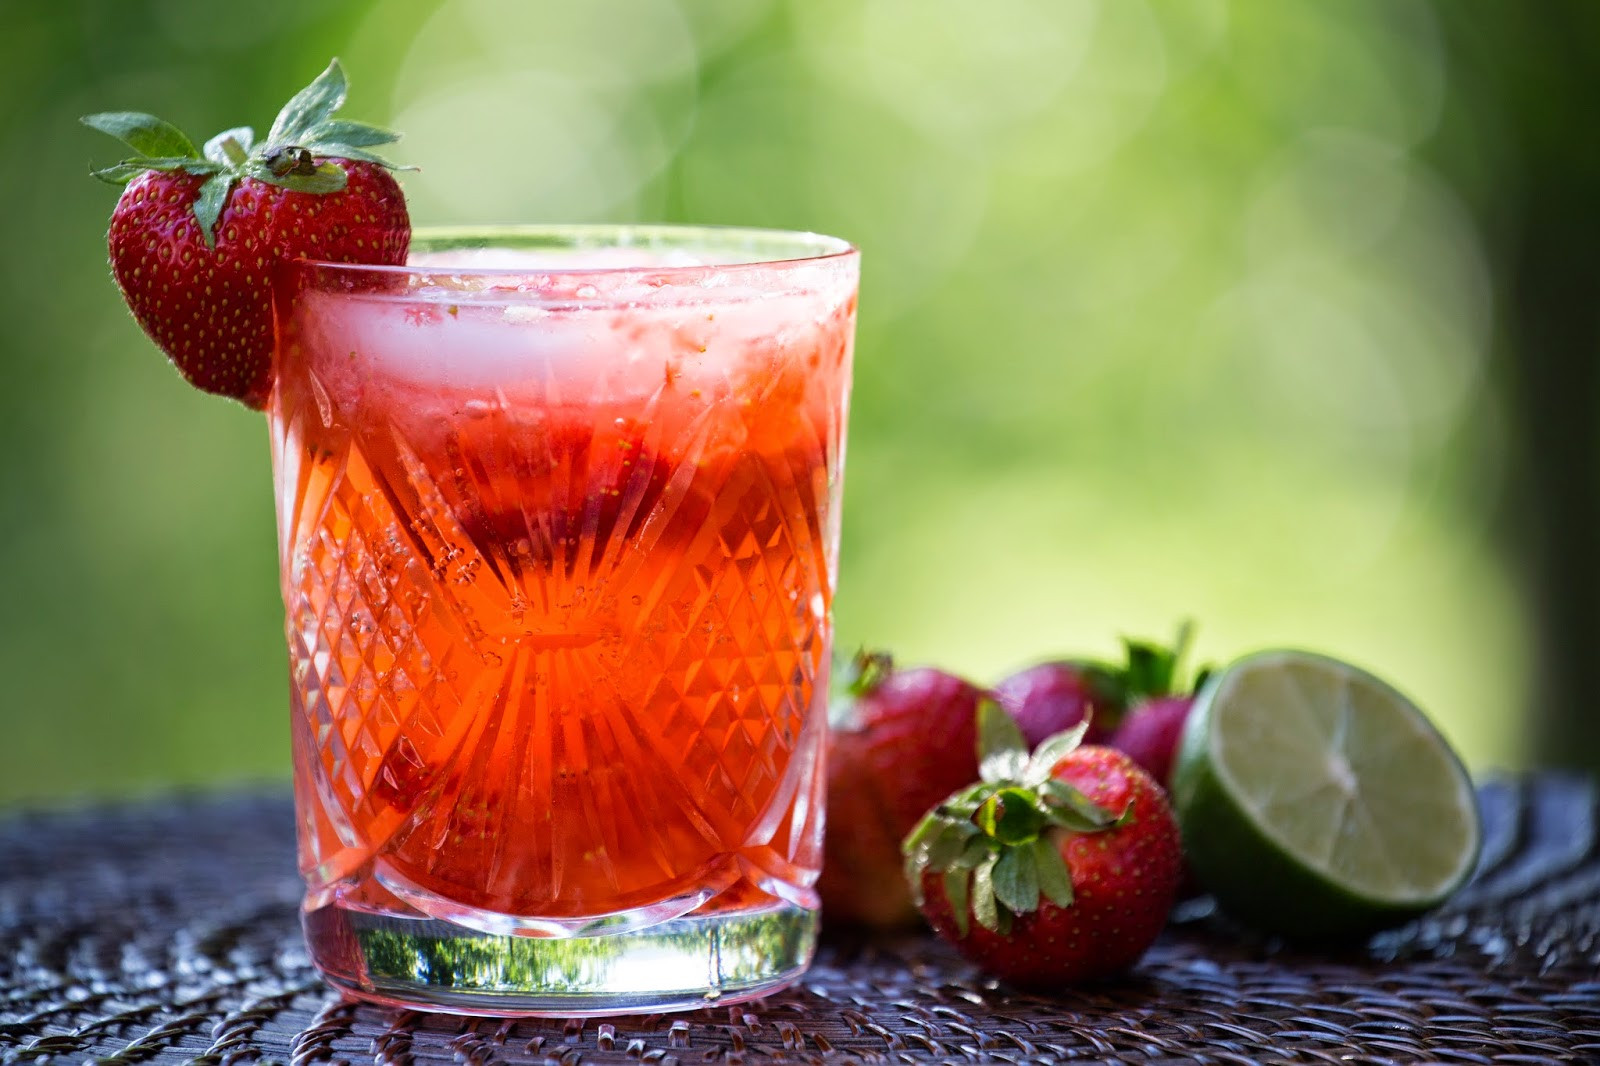 Strawberry Vodka Drinks  Straight to the Hips Baby Strawberry Vodka Cocktail